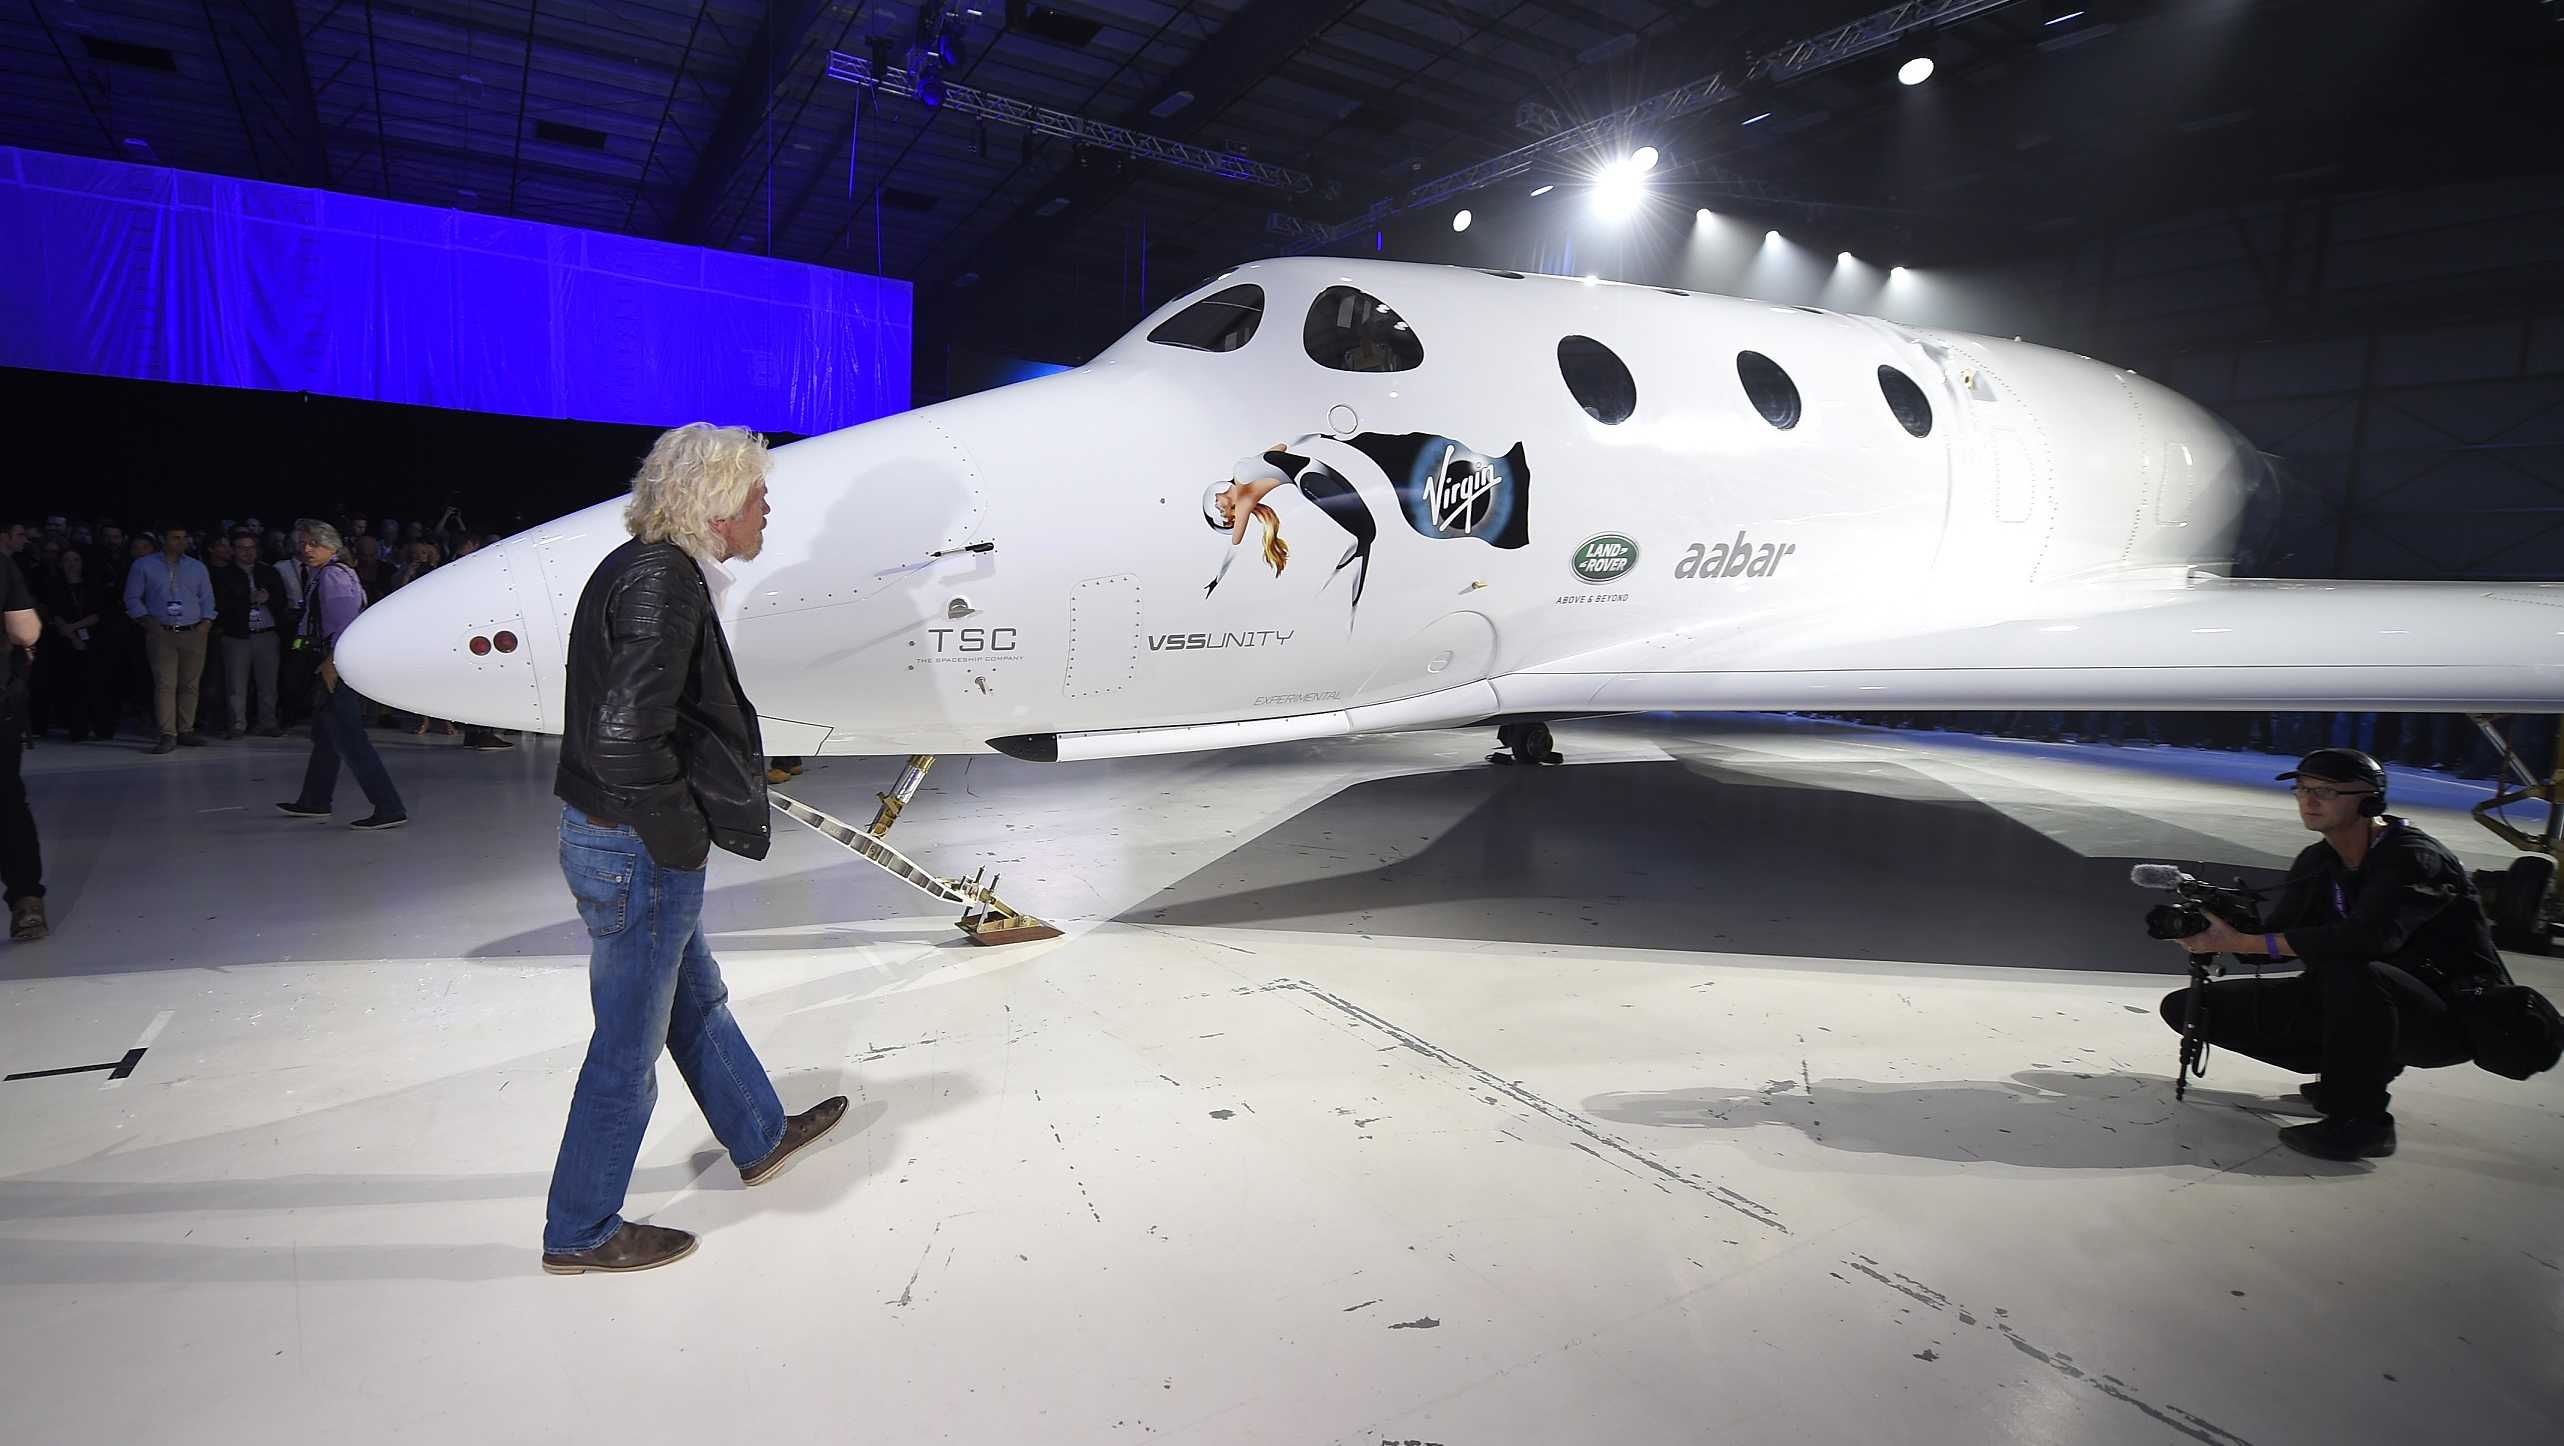 Sir Richard Branson walks in front of Virgin Galactic'sspace tourism rocket after it was unveiled in February2016, in Mojave, Calif.